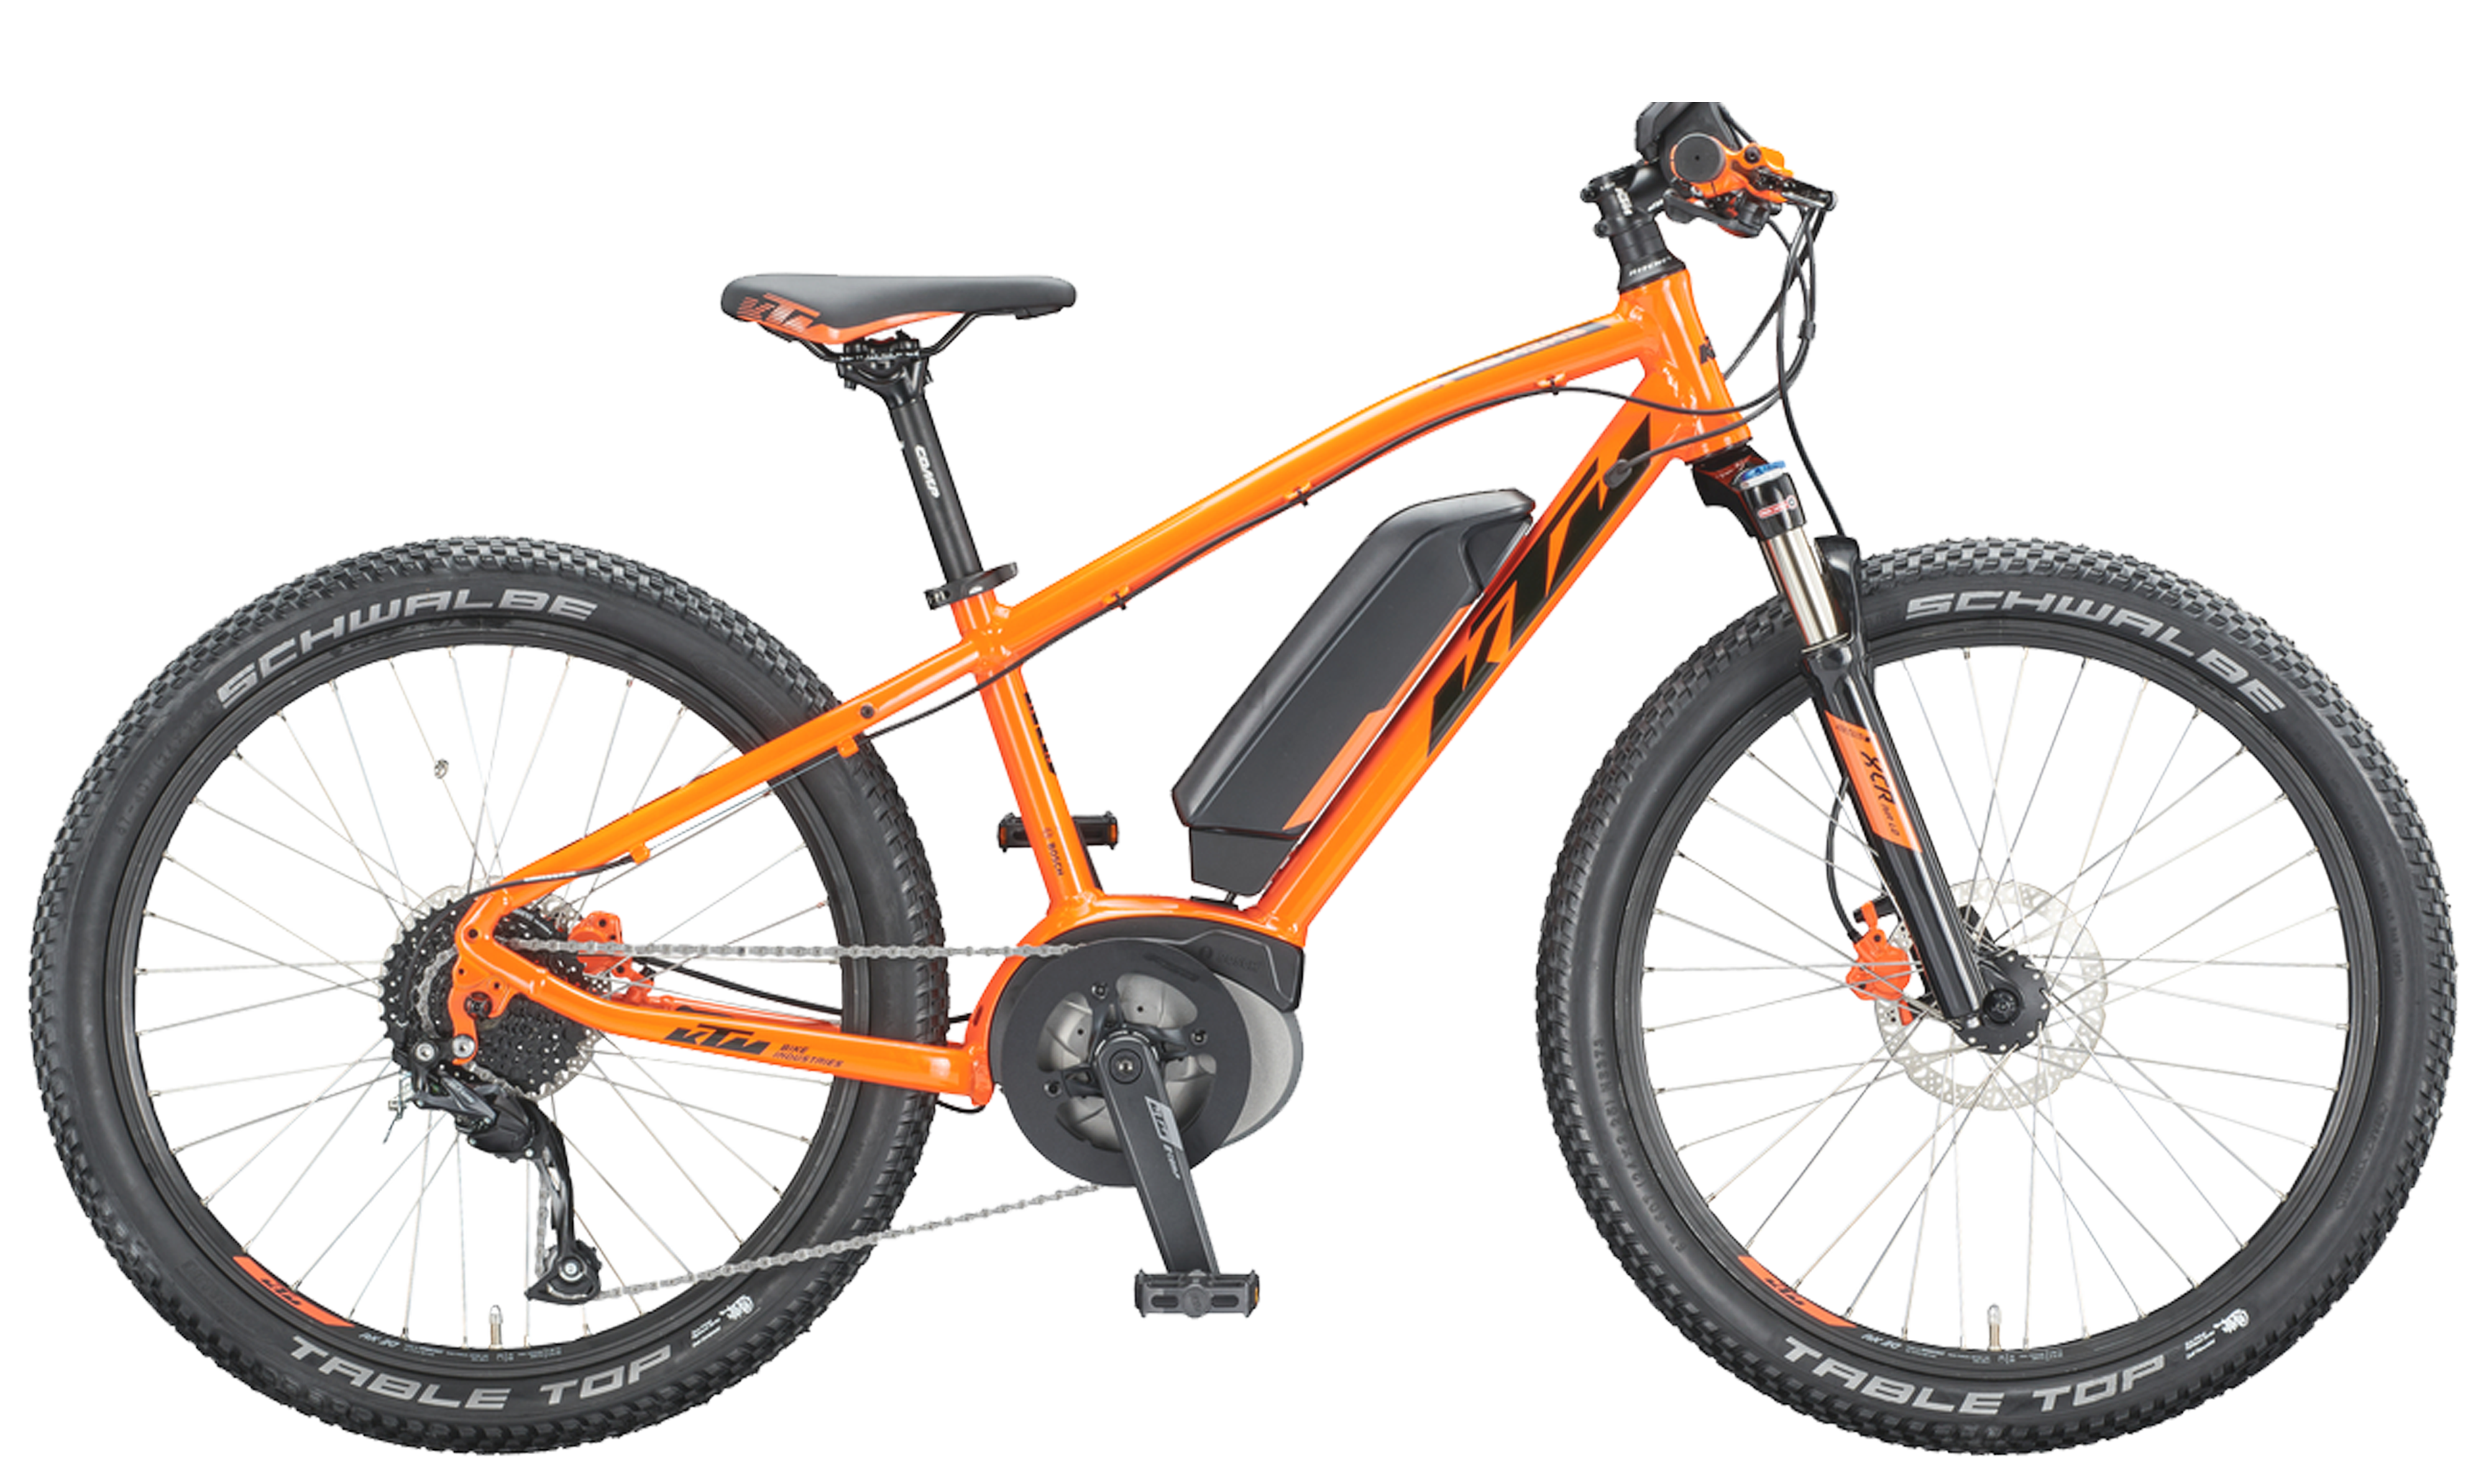 https://w8w5m3f8.stackpathcdn.com/17812-thickbox_extralarge/vtt-electrique-ktm-enfant-macina-mini-me-241-400wh.jpg